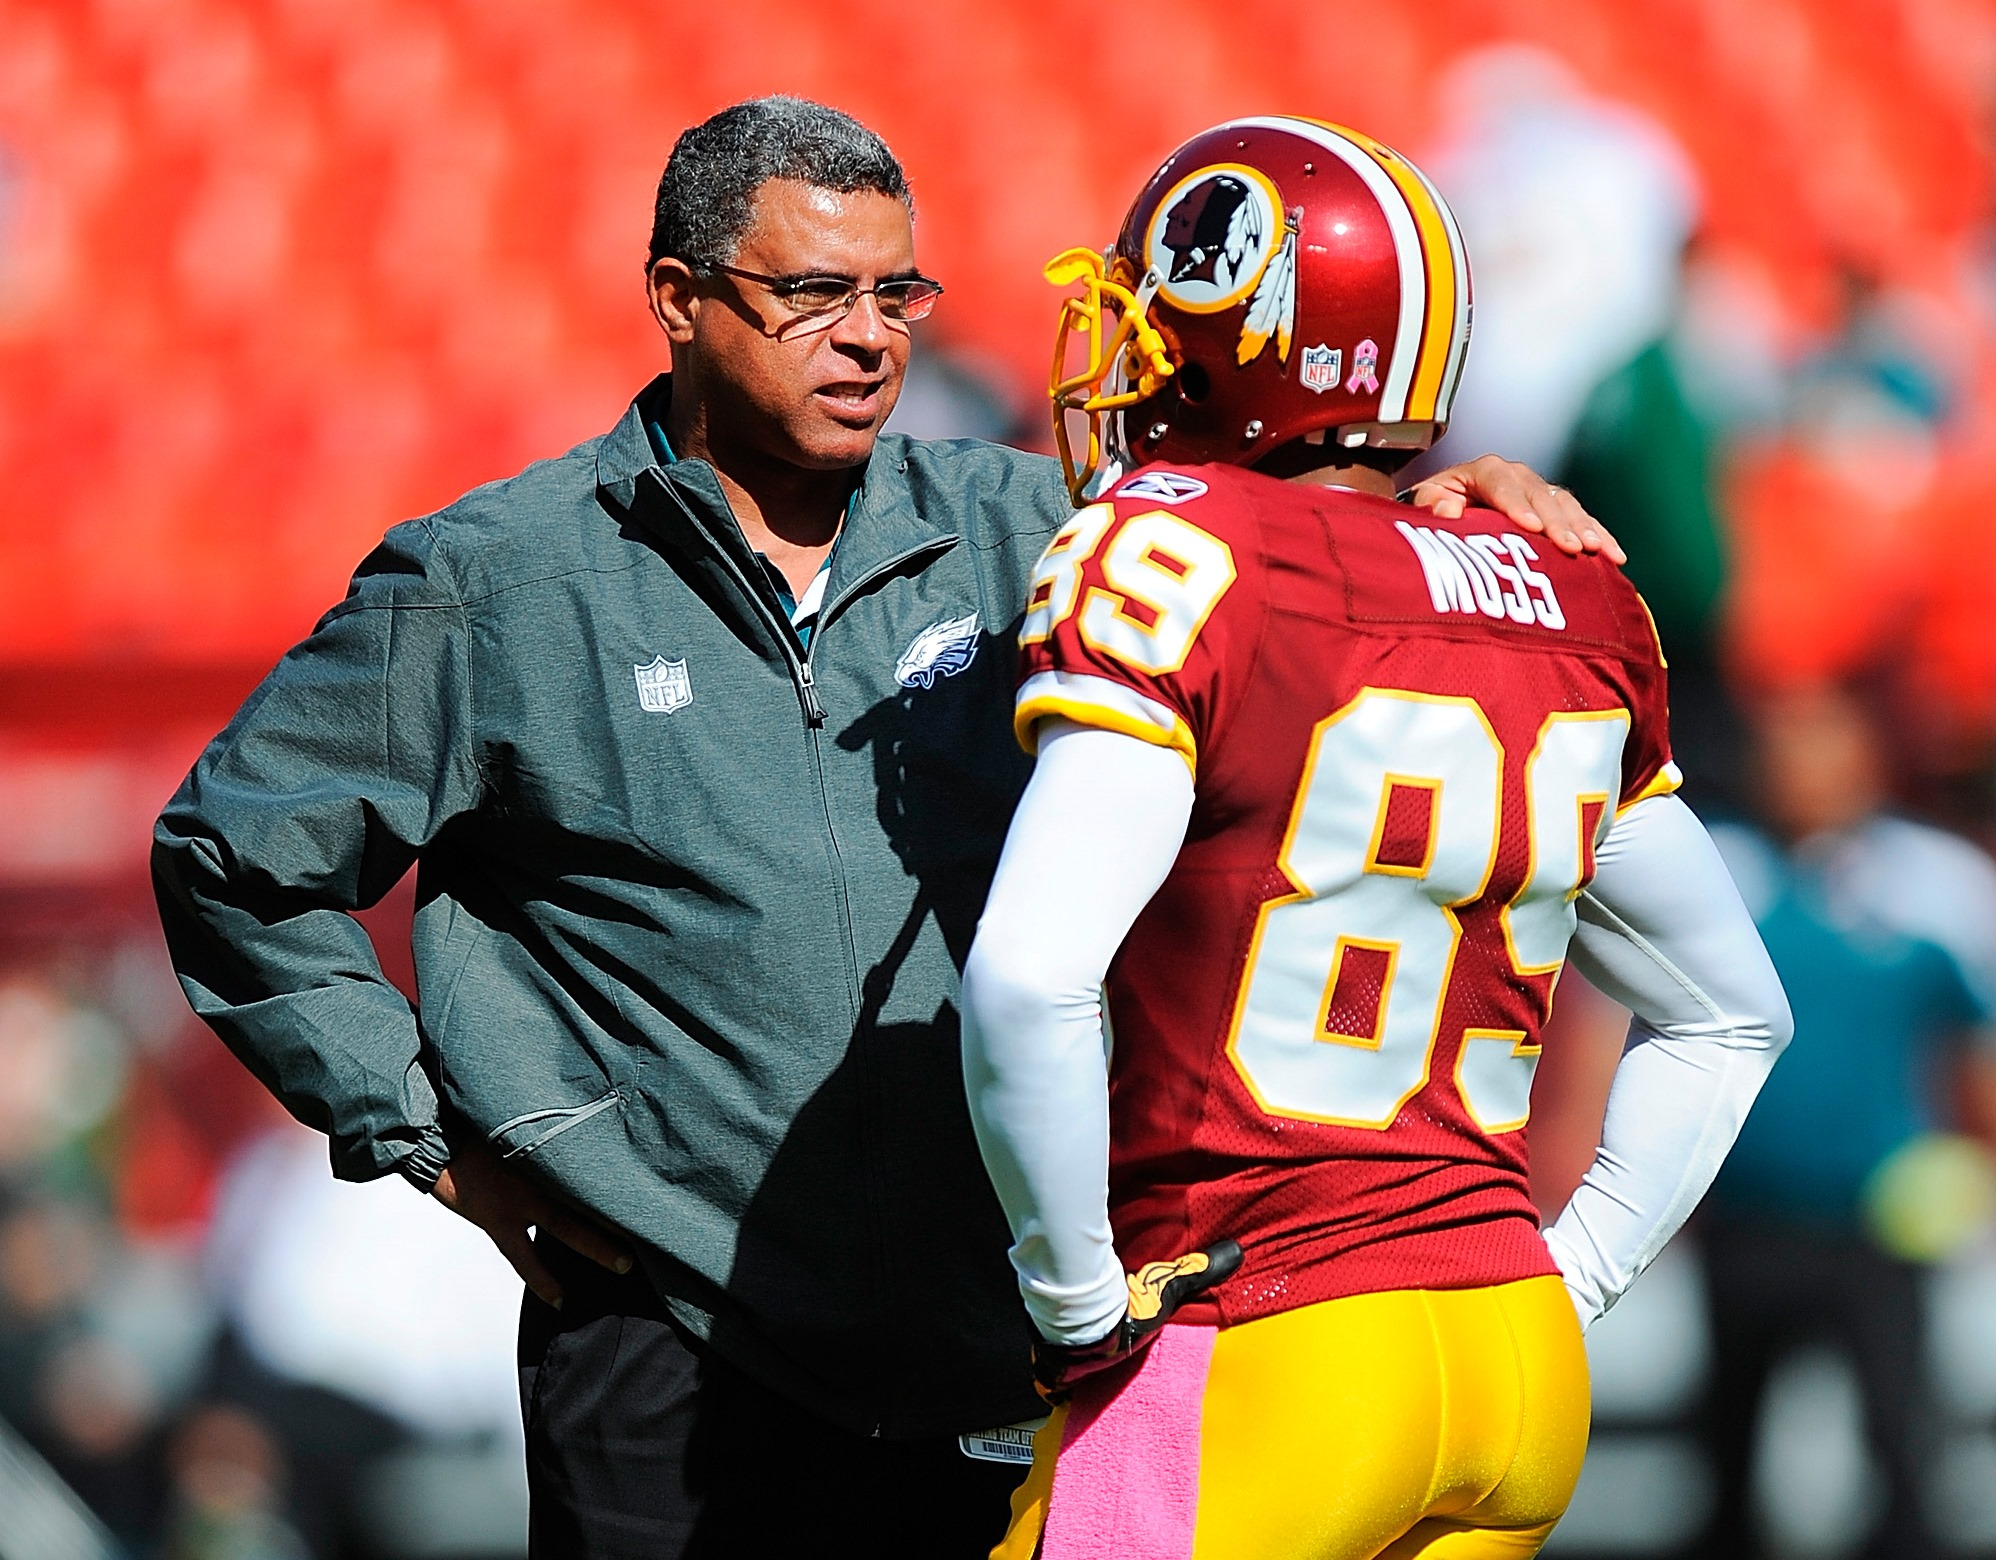 David Culley, during his time as Philadelphia Eagles wide receivers coach, talks with Santana Moss of Washington before a game at FedExField on Oct. 16, 2011. (Getty Images)